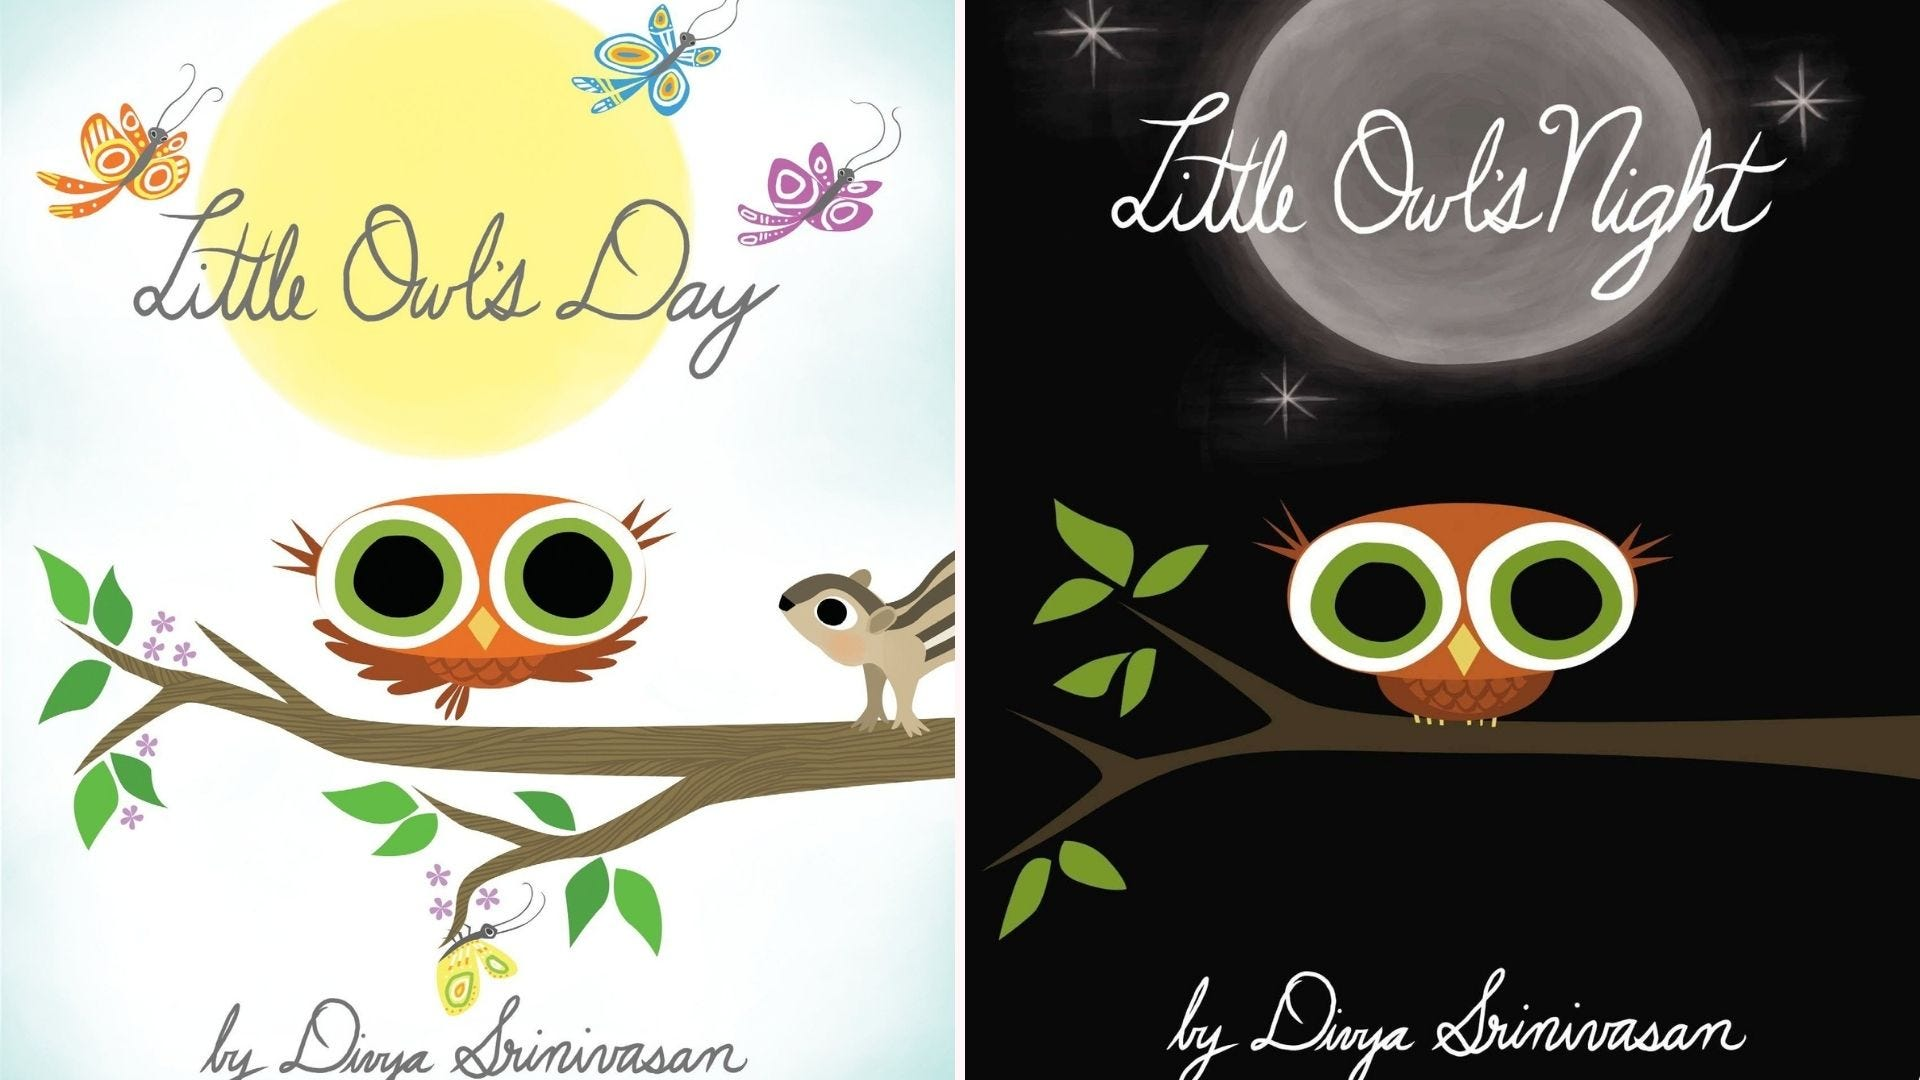 The left image is the cover of Little Owl's Day and the right image is the cover of the book Little Owls Night, both written by Divya Srinivasan.